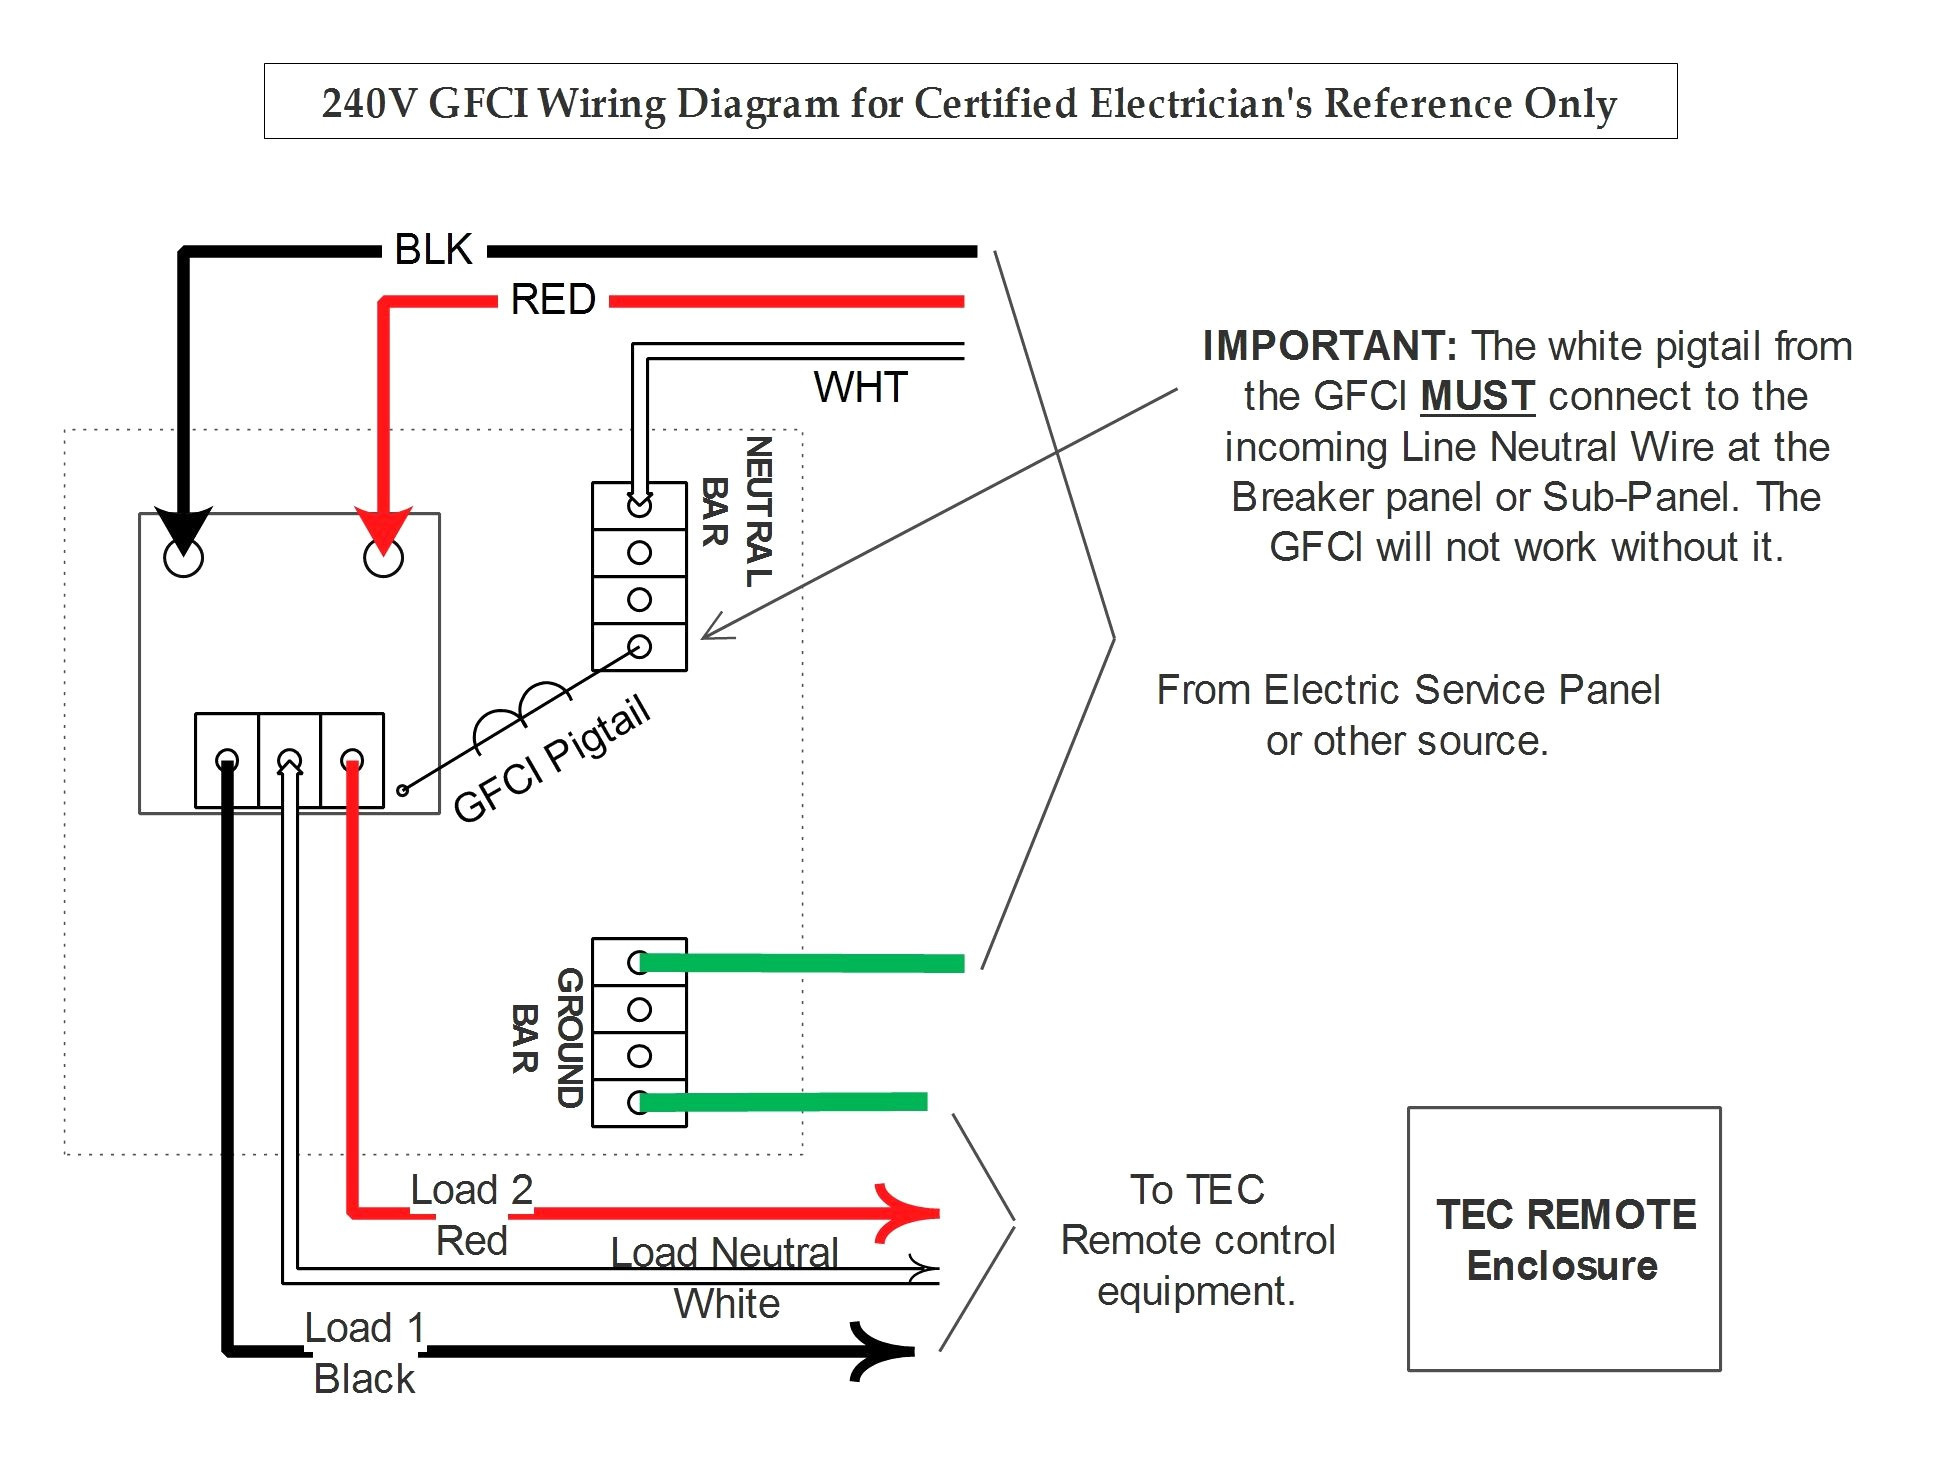 shaw box hoist wiring diagram Download-Box Hoist 800 Wiring Diagram Get Free Image About Wiring Diagram Shaw Box Hoist Wiring 17-i